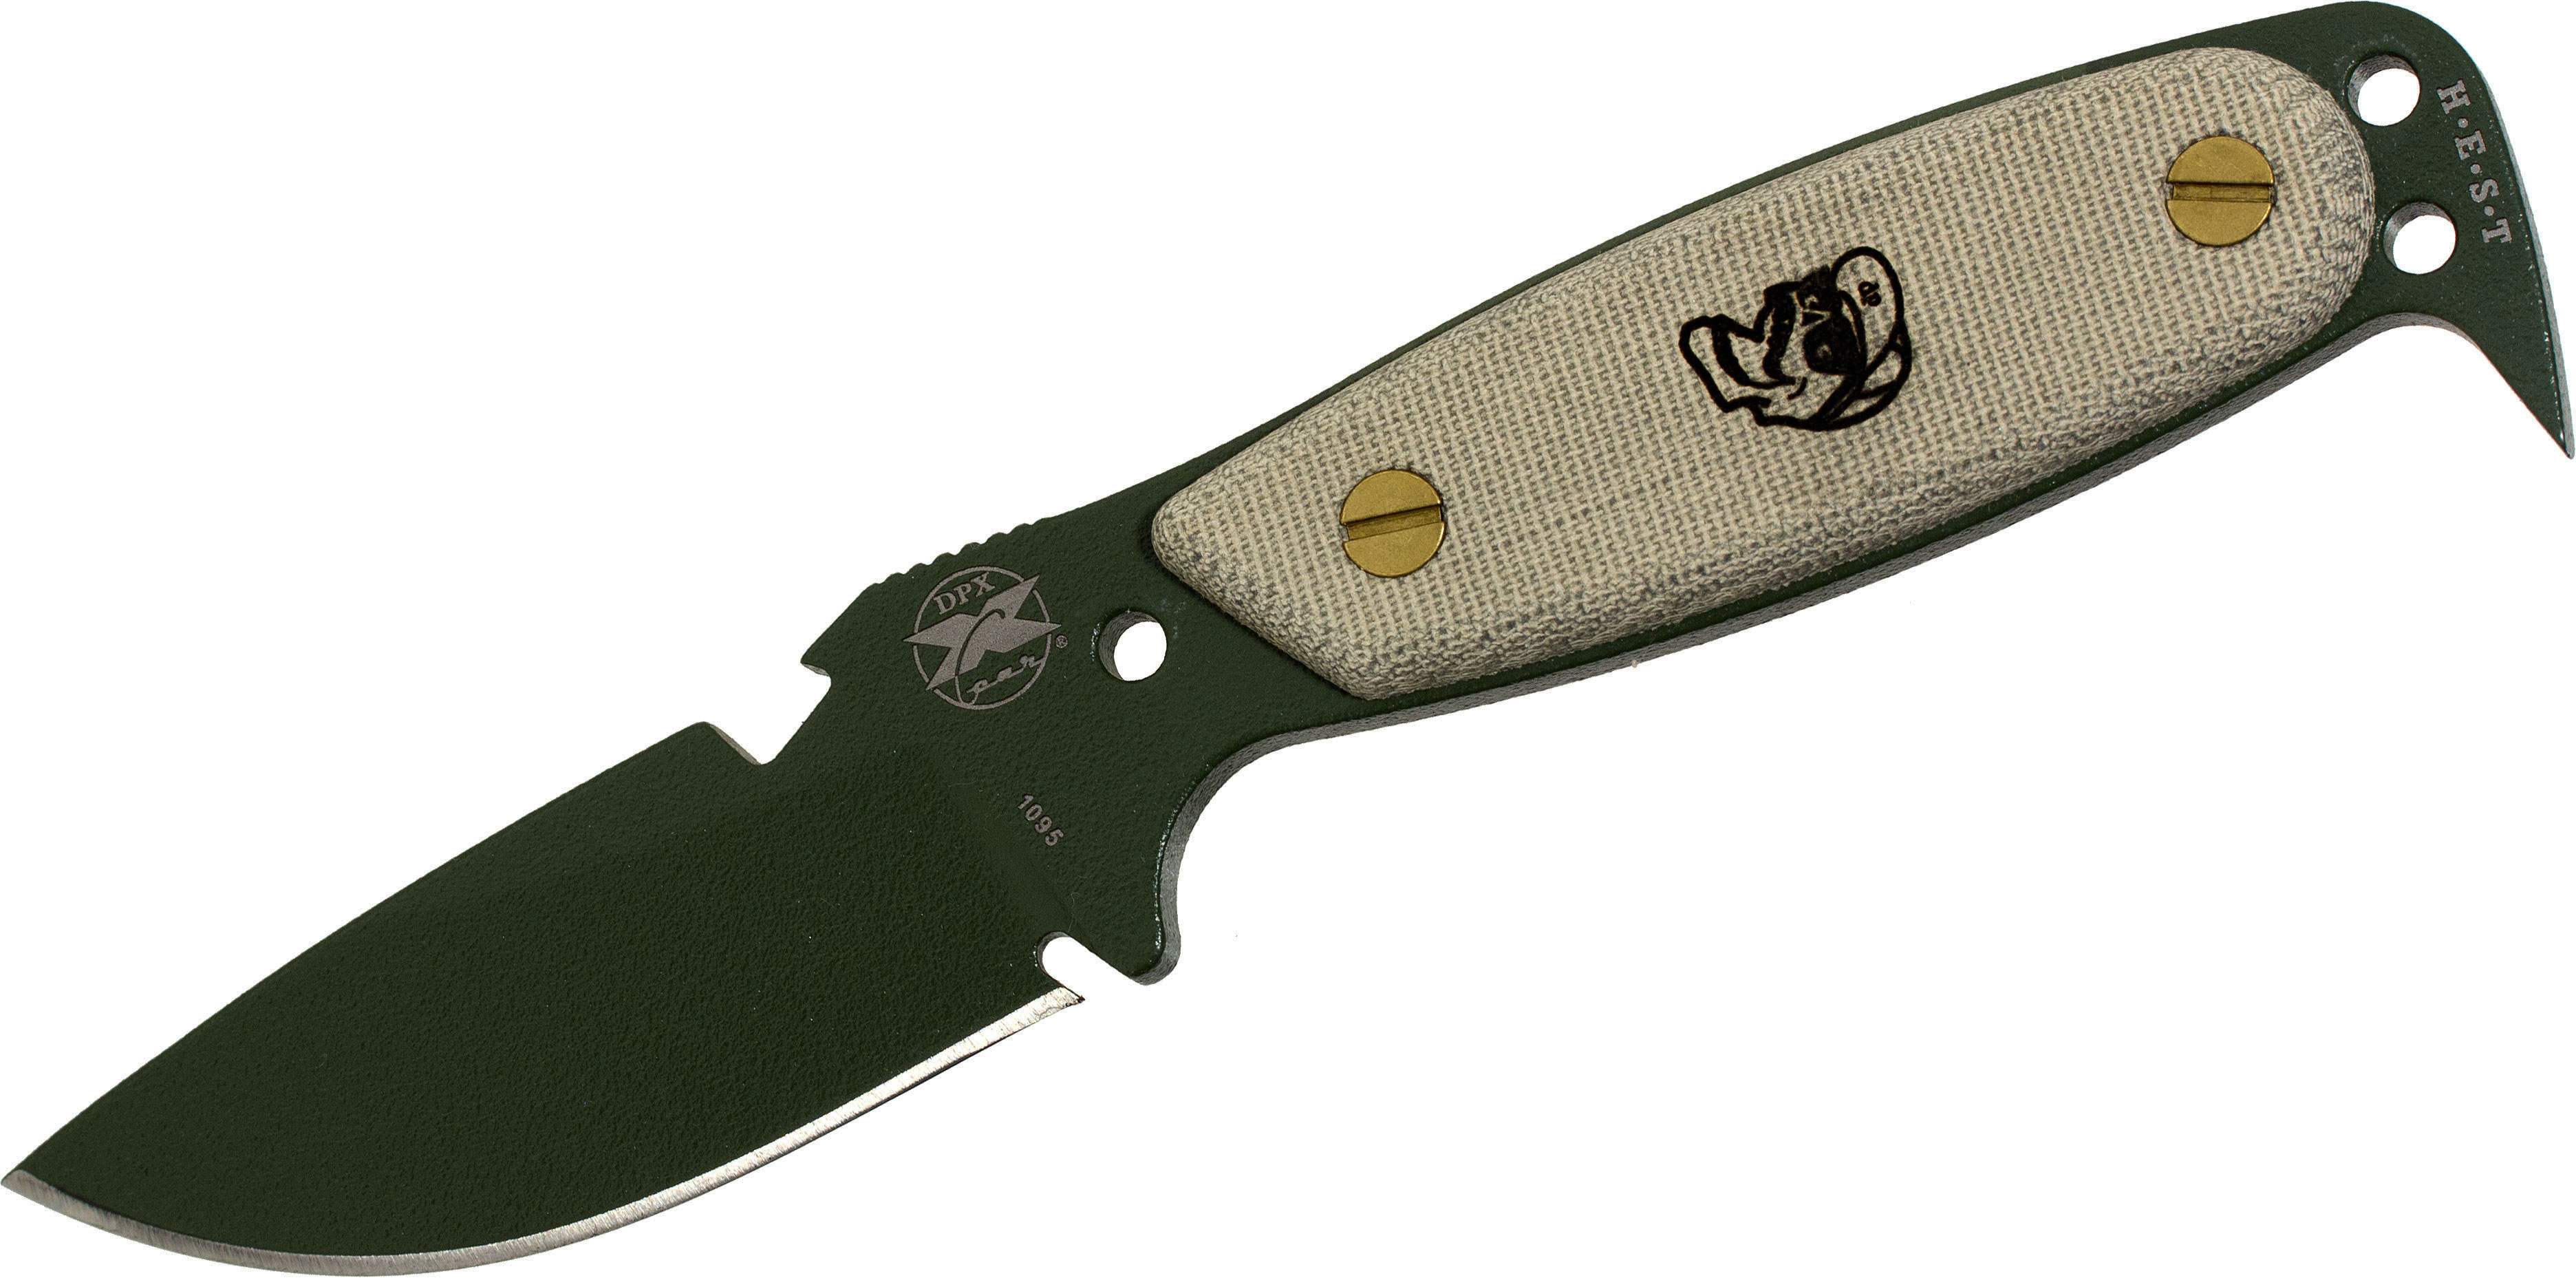 DPx Gear HEST Original by Rowen Fixed 3.13 inch Blade, OD Green, Micarta Handles, Kydex Sheath